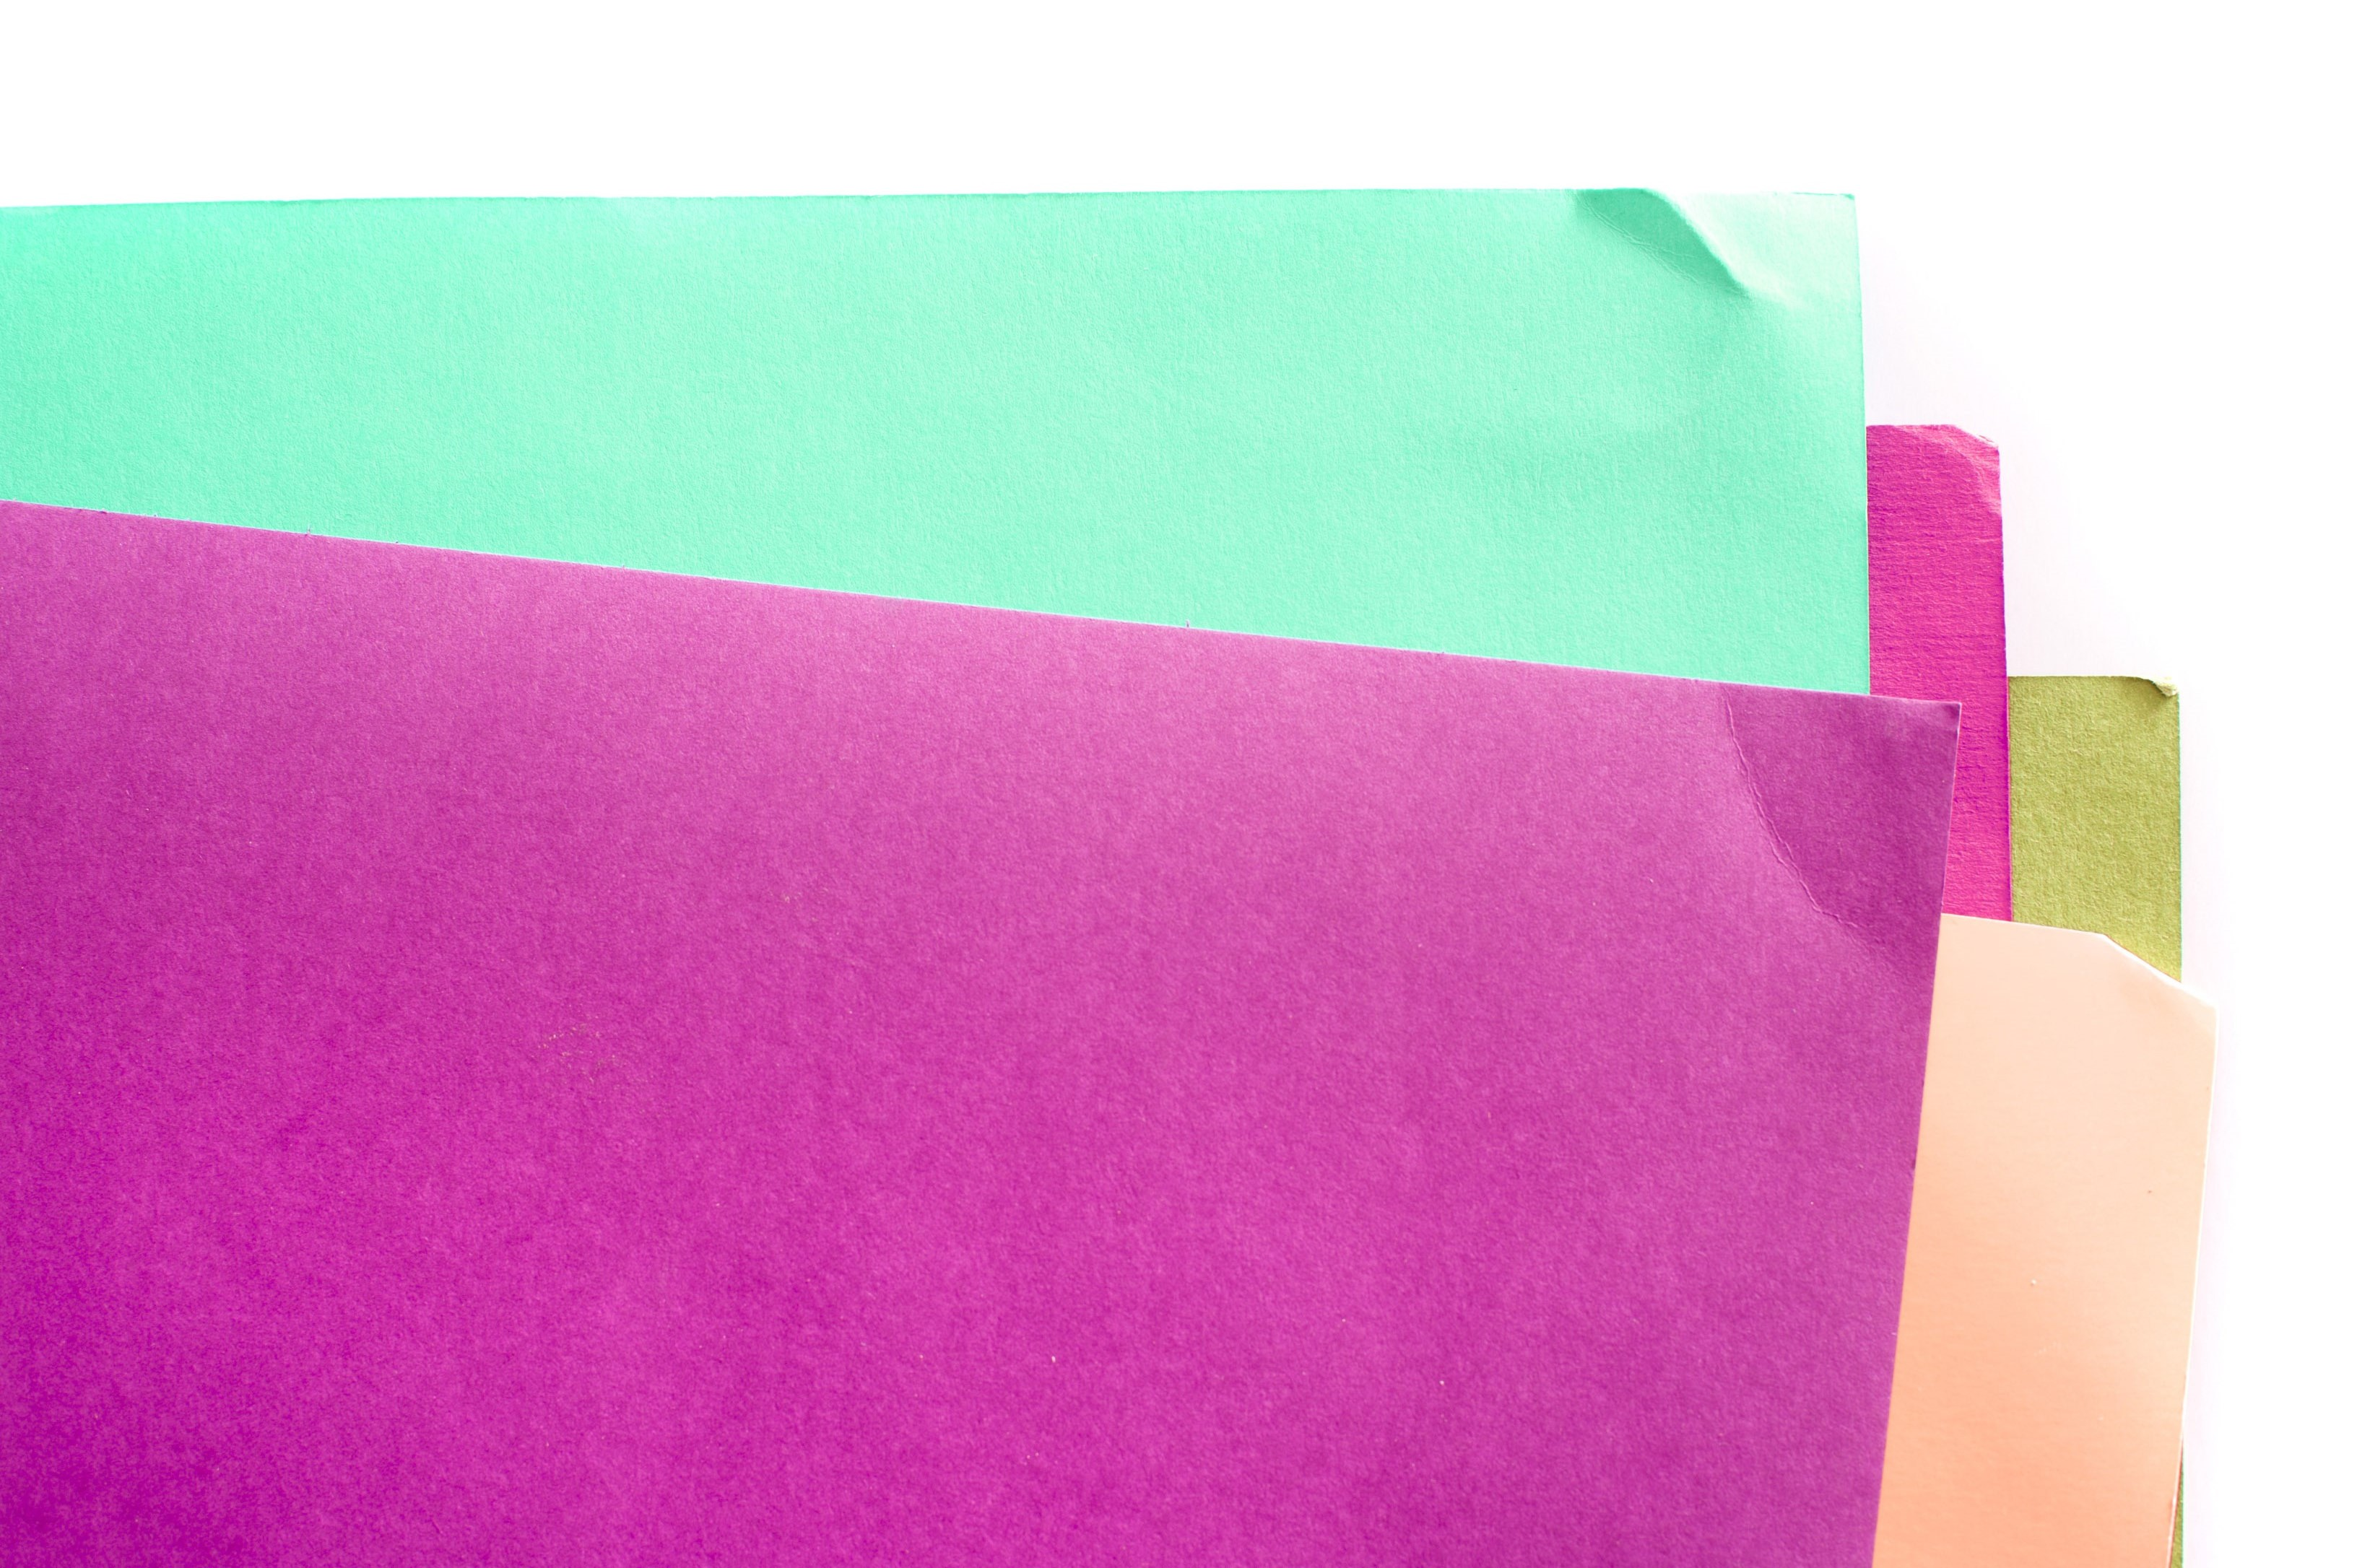 A series of overlapped sheets of colourful paper